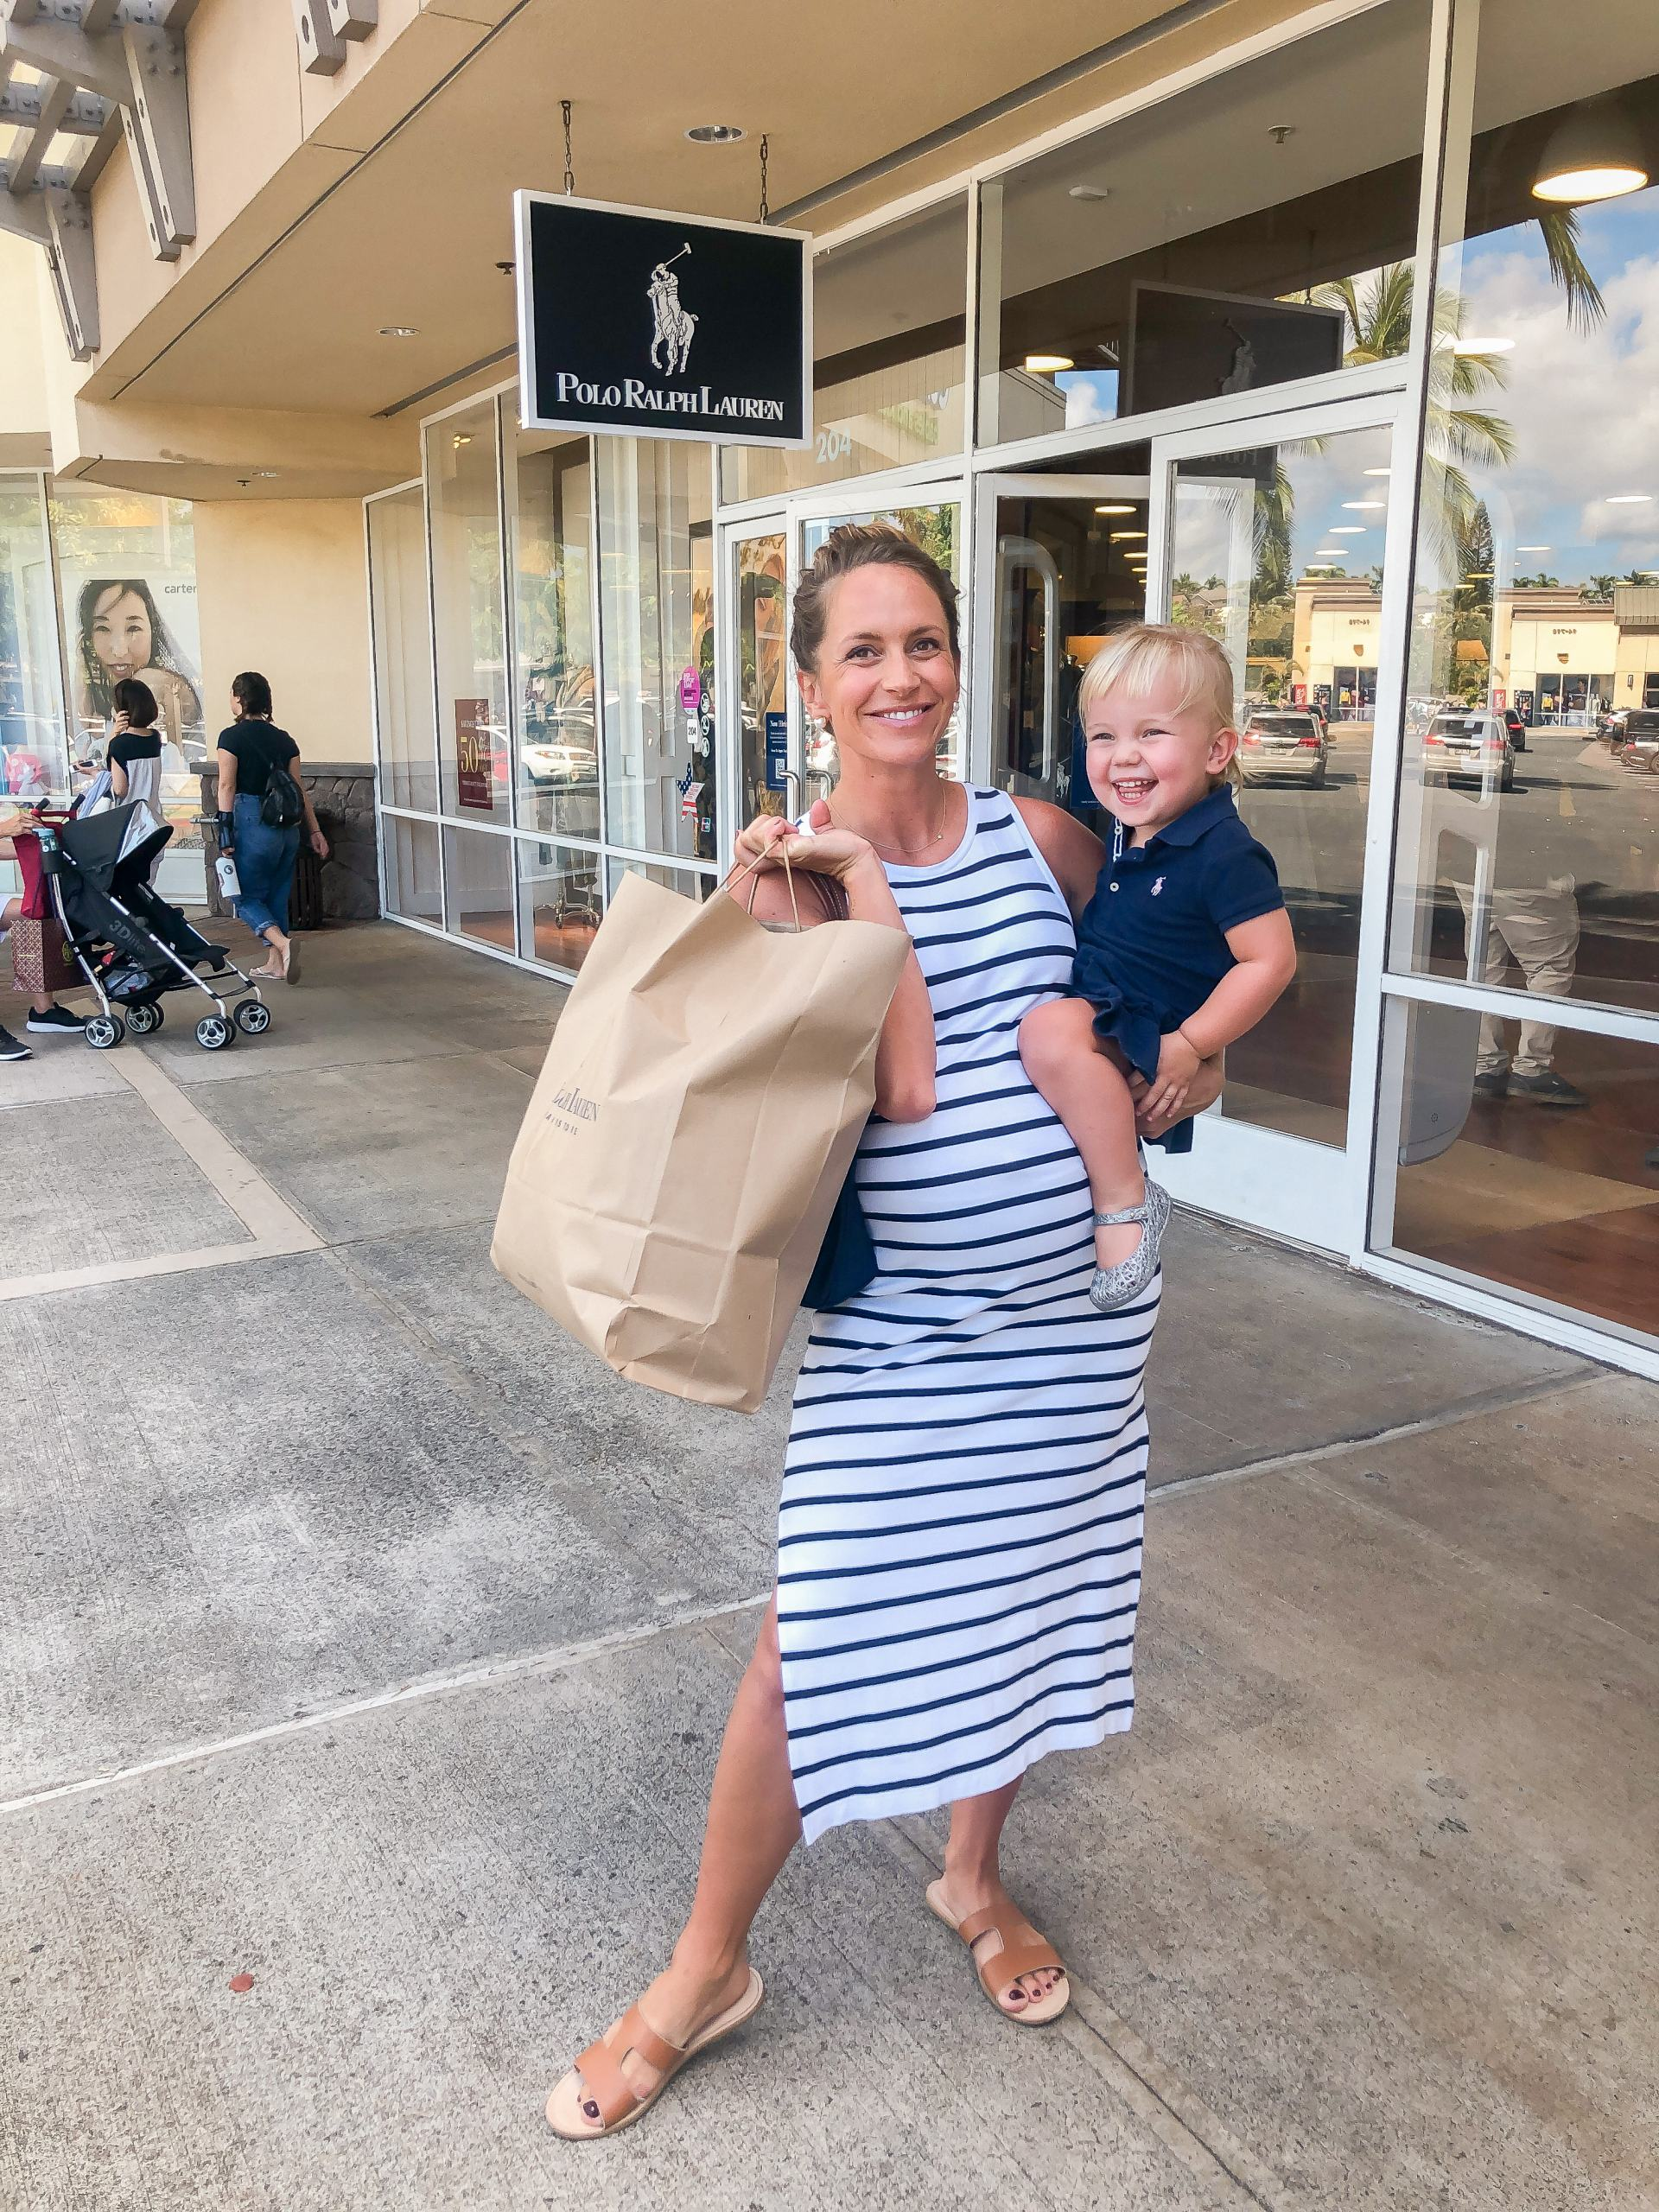 holiday ready waikele premium outlets - shopping at Waikele Premium Outlets - Simon Center Outlets - outlet mall Hawaii - Oahu outlet mall - holiday shopping Hawaii - outlet mall in hawaii - polo ralph lauren outlet hawaii - pregnancy style - maternity style - 33 weeks pregnant